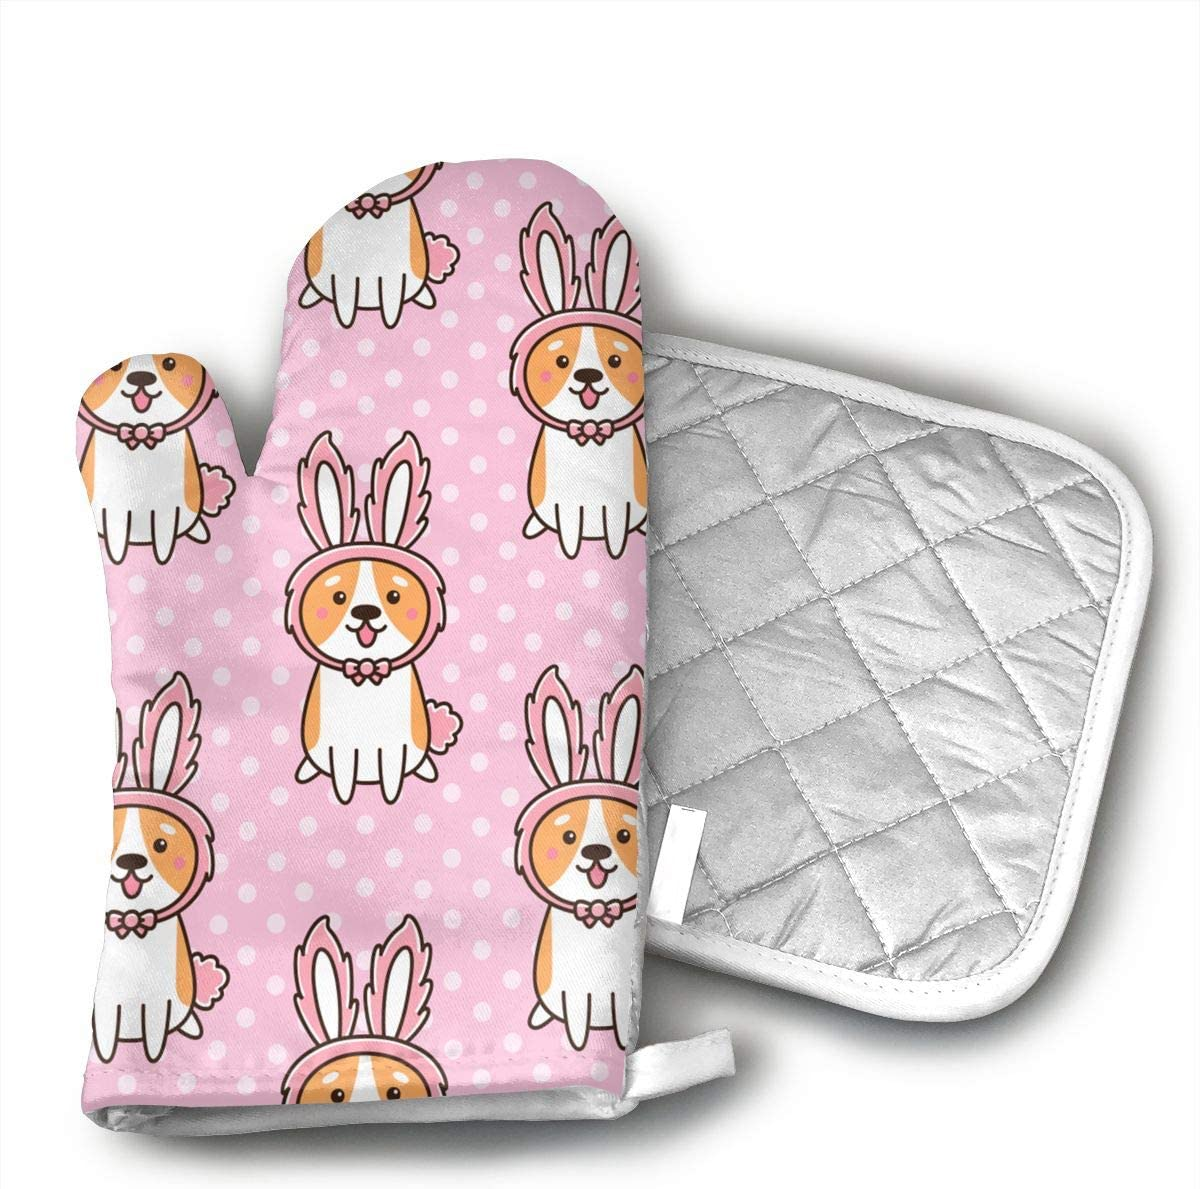 TRENDCAT Welsh Corgi in A Hat Bunny Ears Oven Mitts and Potholders (2-Piece Sets) - Extra Long Professional Heat Resistant Pot Holder & Baking Gloves - Food Safe